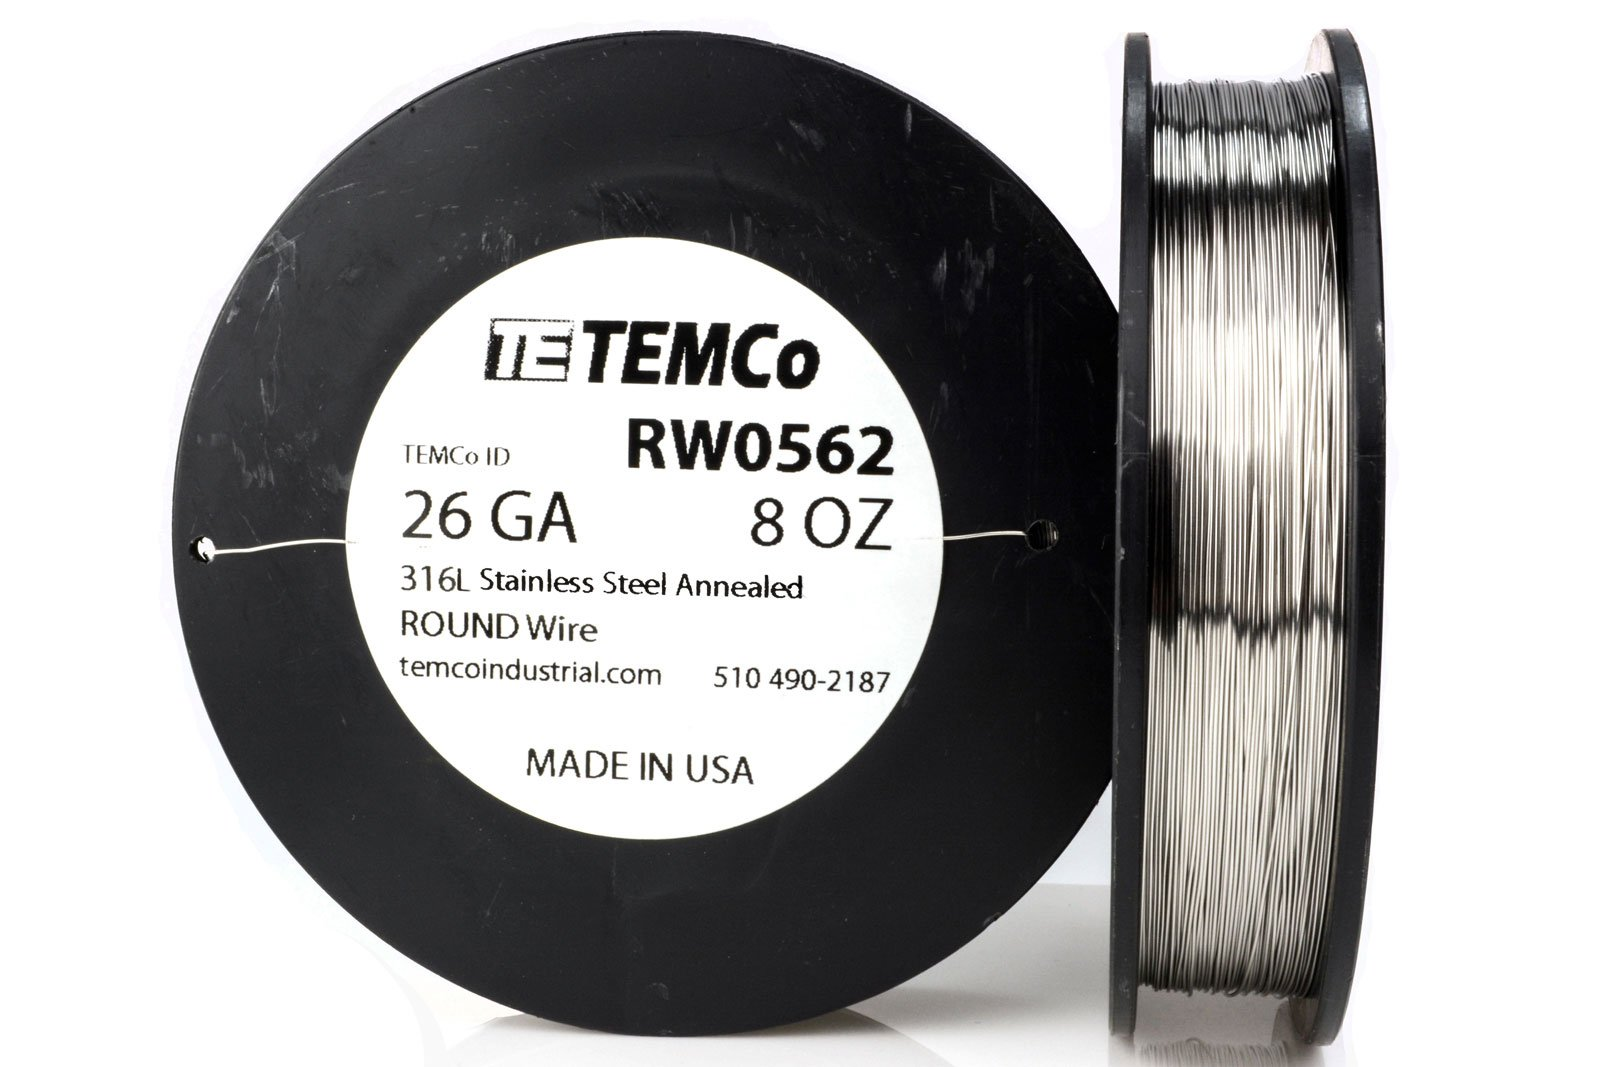 TEMCo Stainless Steel Wire SS 316L - 26 Gauge 8 oz (734 ft) Non-Resistance AWG ga by Temco (Image #1)